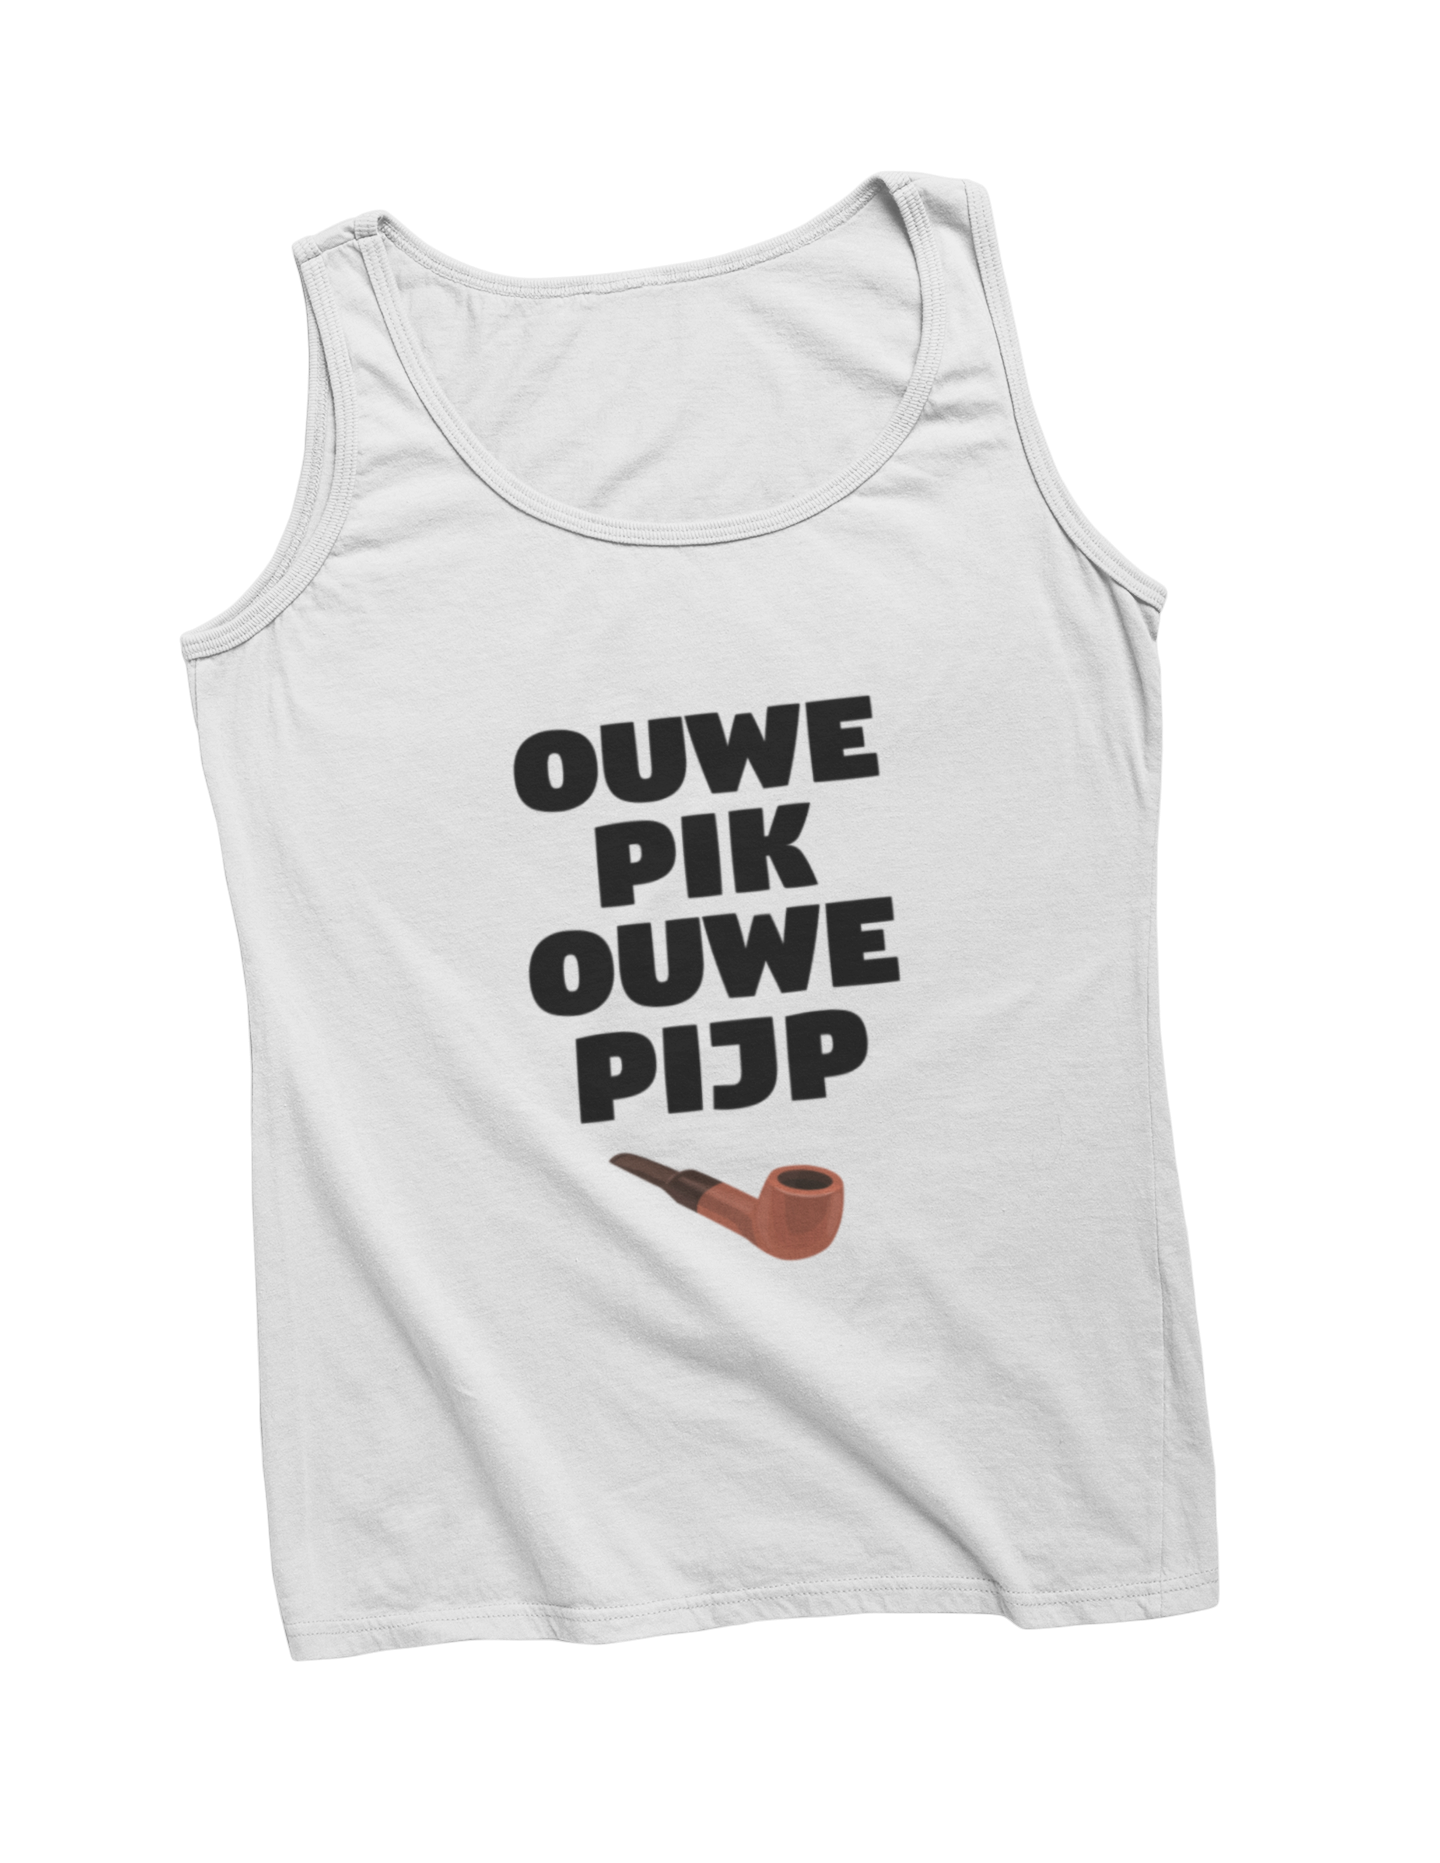 Donnies Webshop | Ouwe pik ouwe pijp | donnie.nl